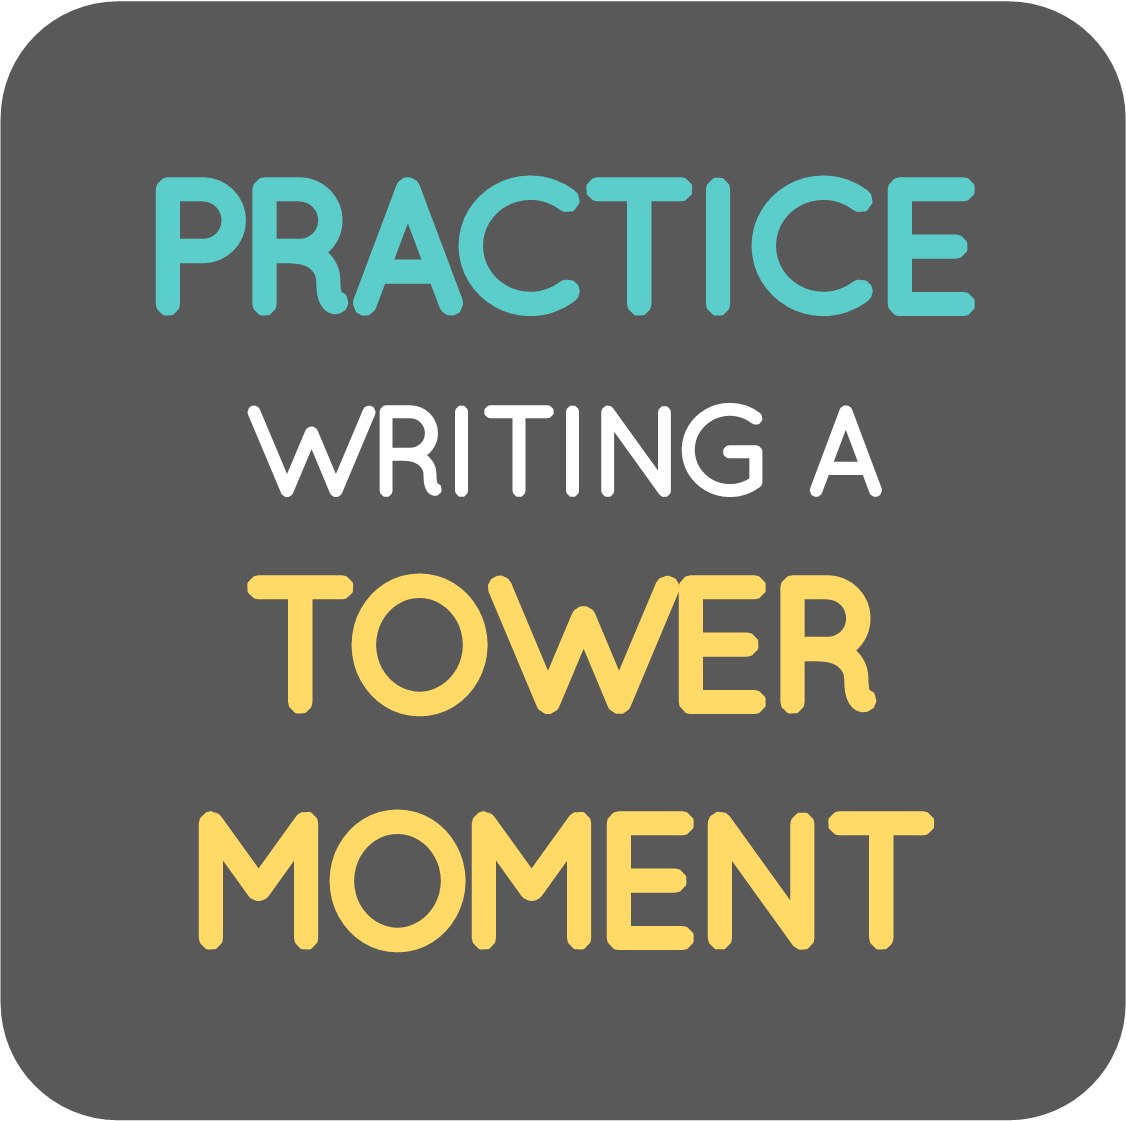 practice writing a tower moment.png